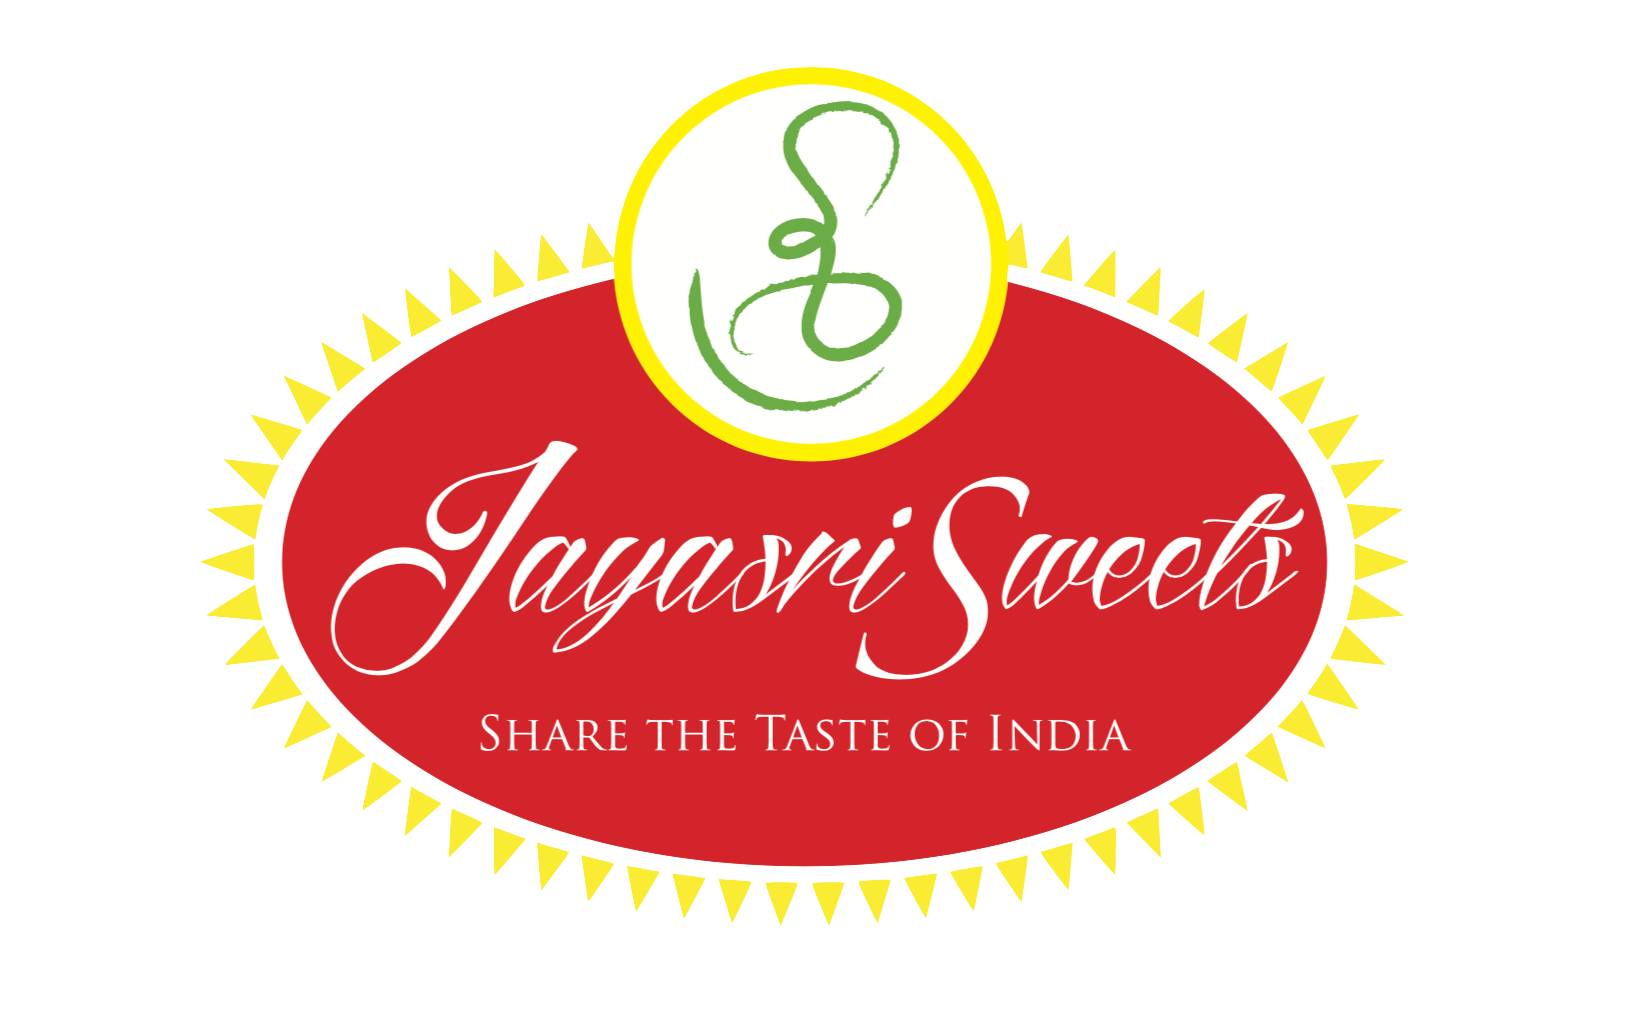 Indian Bakery | About Us | Jayasri Sweets